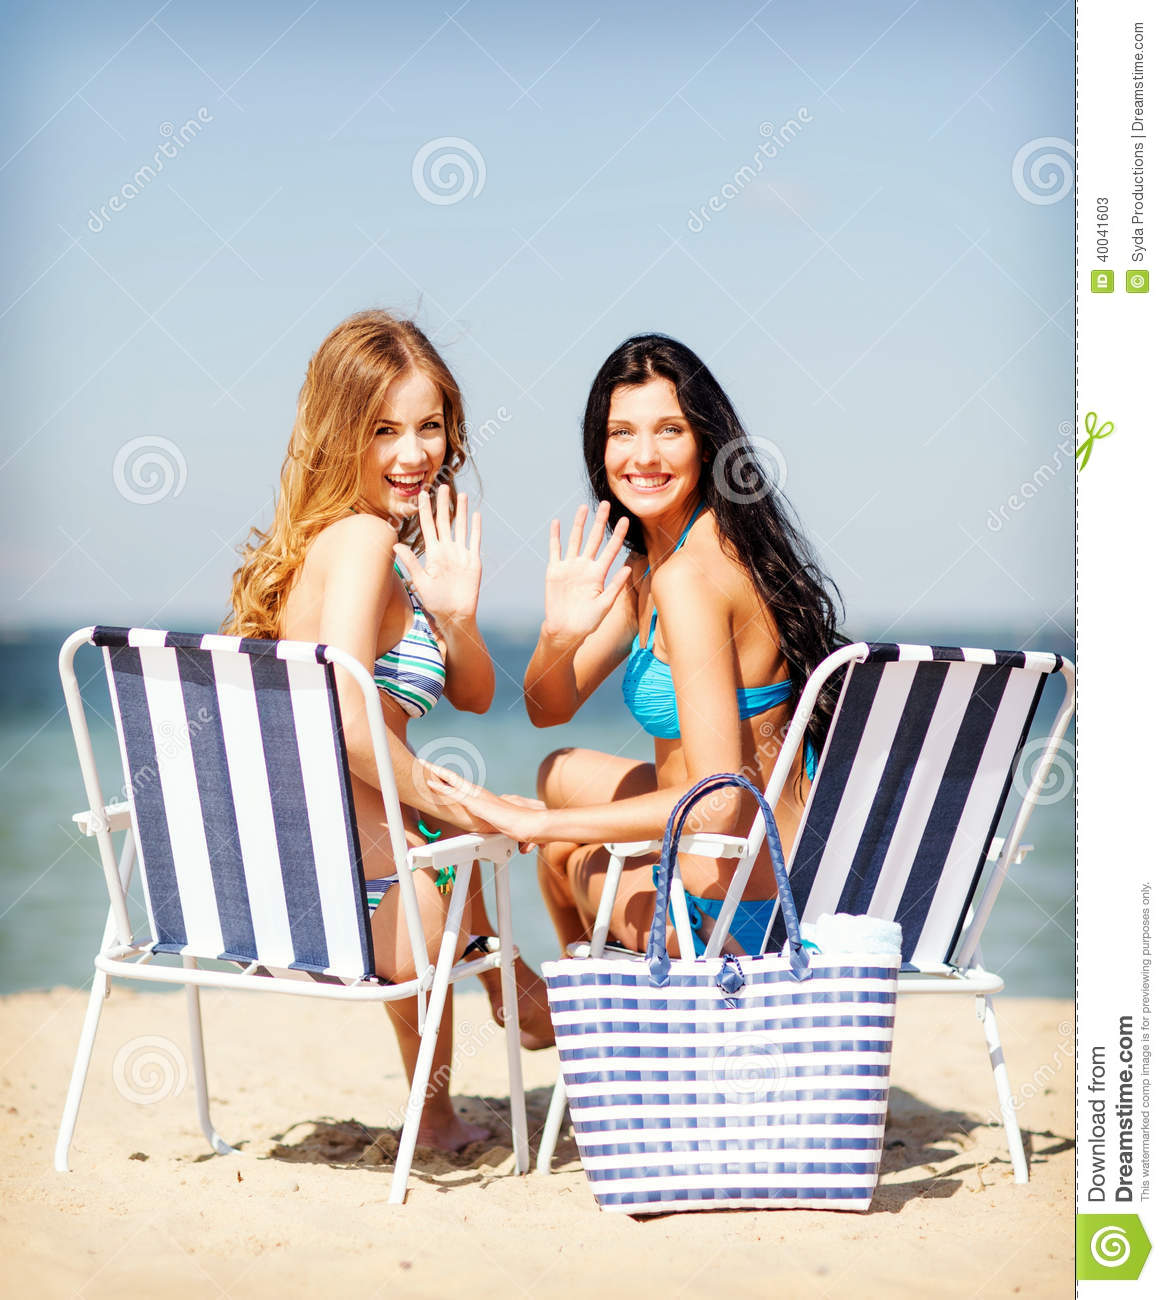 Sunbathing Chairs Girls Sunbathing On The Beach Chairs Stock Photo Image